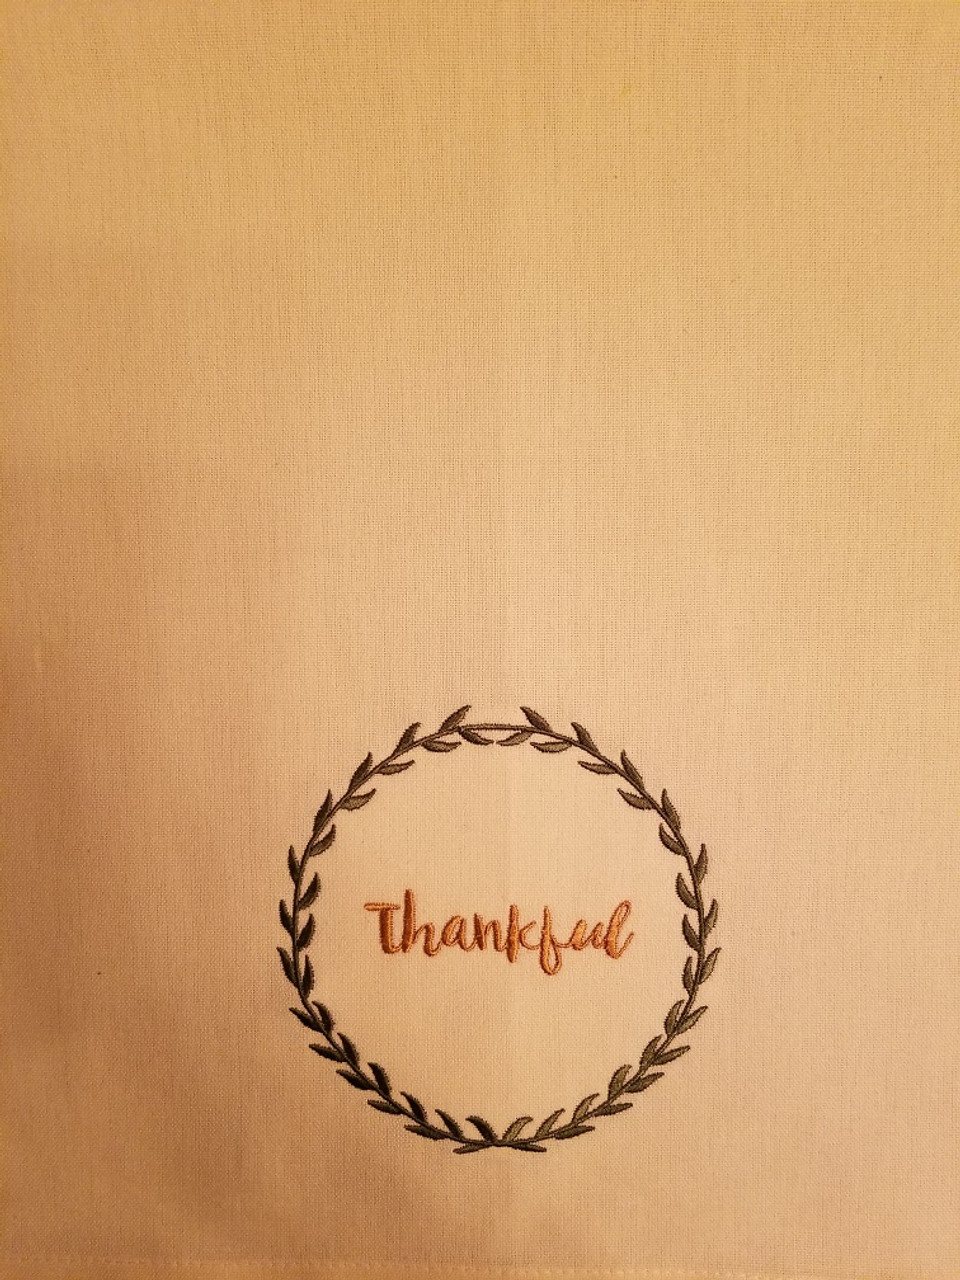 """Thankful 2 - Kitchen Towel - 20"""" x 28"""" Embroidery on a cream colored towel. 100% Cotton with loop, for optional hanging. Machine washable in cool water and tumble dry at low temperature. Minimal shrinkage. Size: 20"""" x 28"""""""